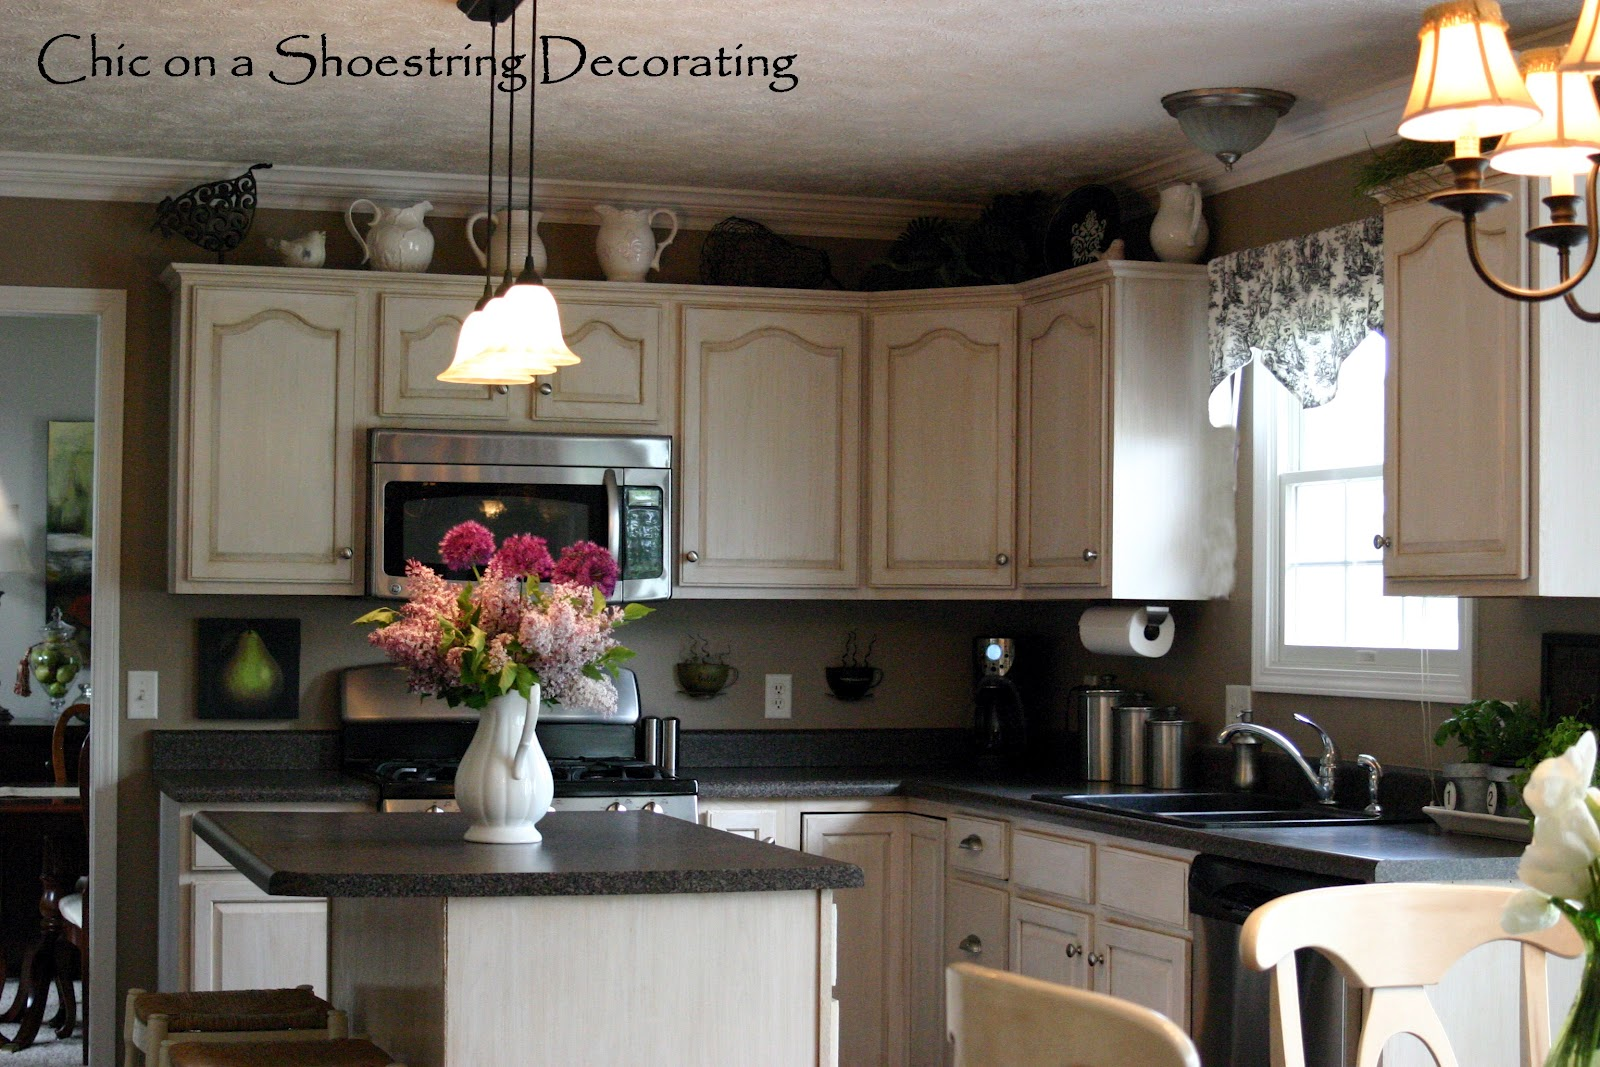 Chic on a Shoestring Decorating: My Spring Kitchen